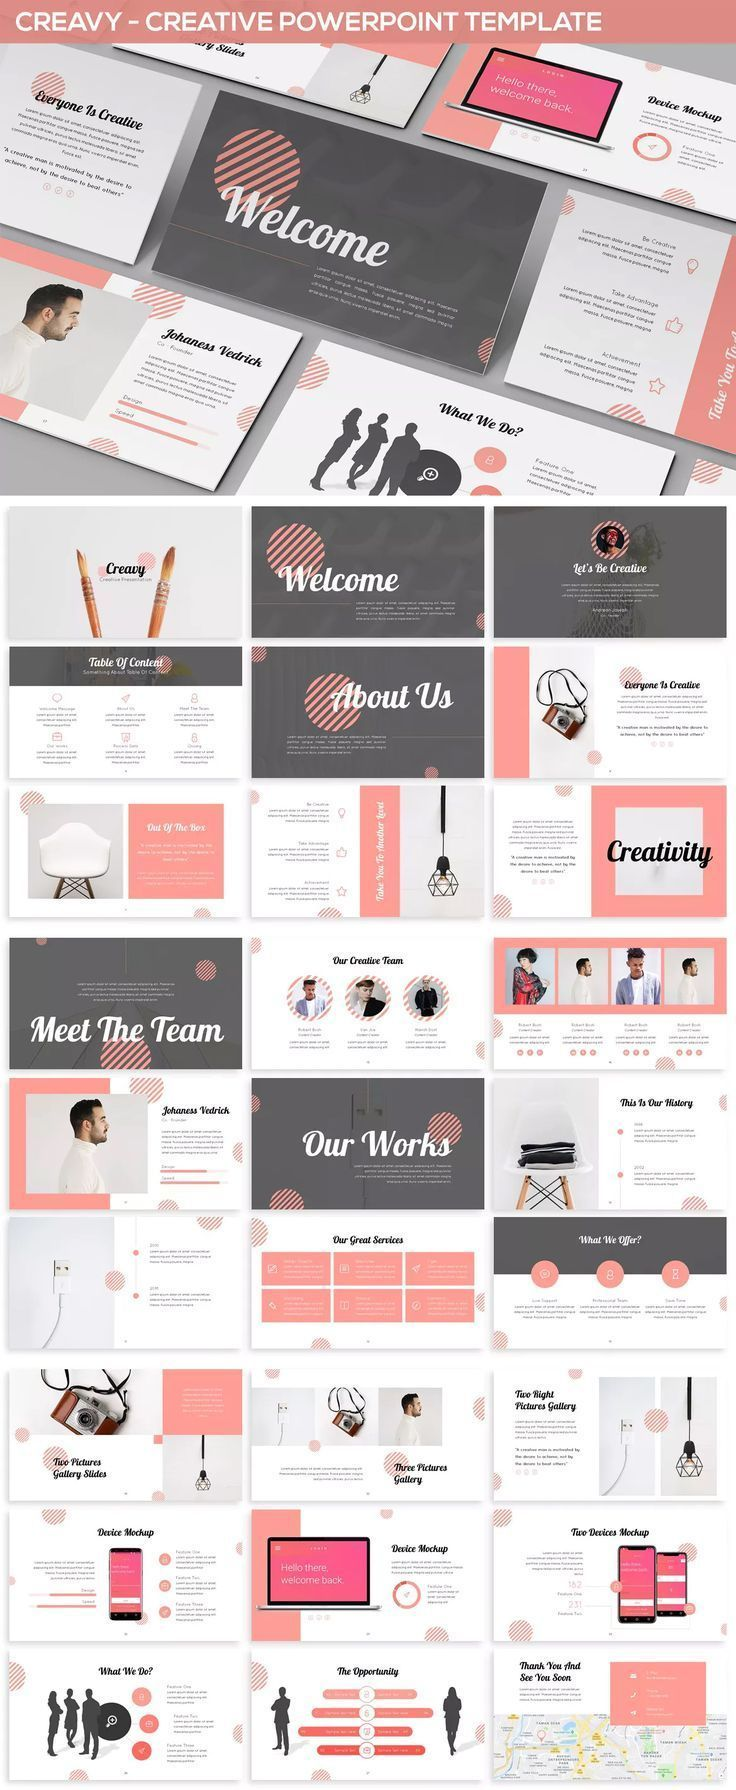 Powerpoint Template For Creative Presentation Ideas Creative Powerpoint Presentations Presentation Topics Creative Presentation Ideas